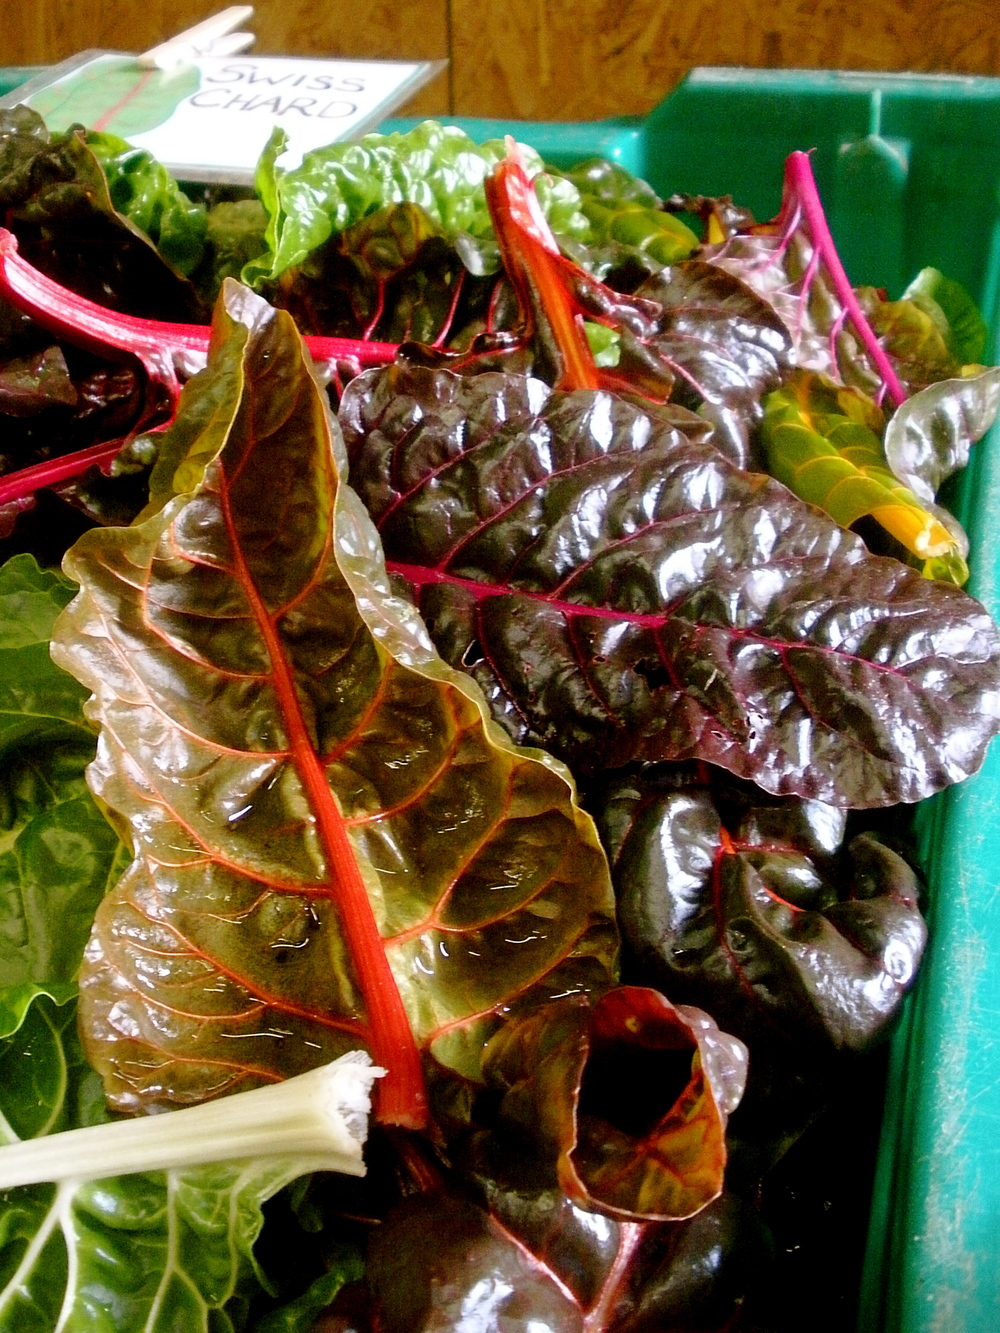 Chard! (Fort Hill Farm, November 2013)